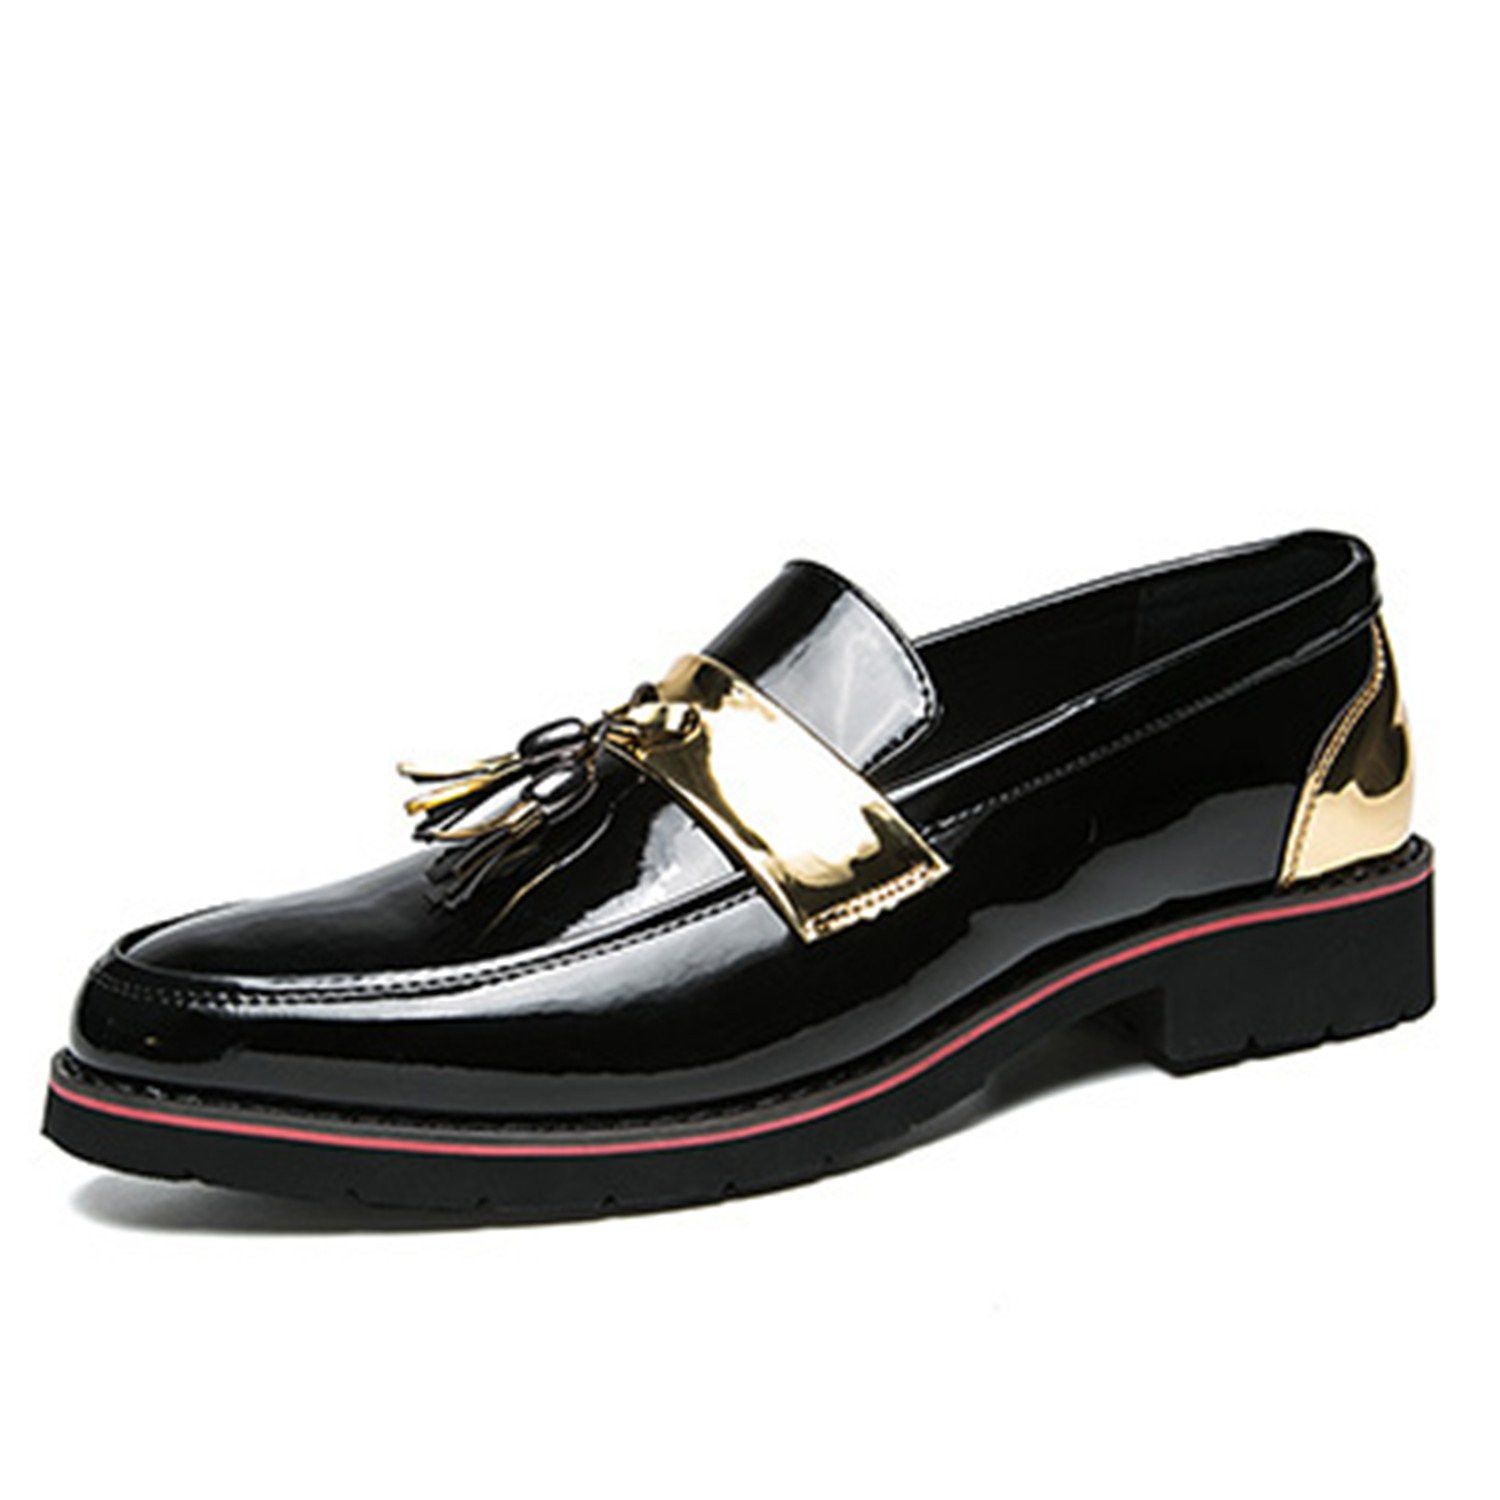 Engineeringed Fashion Tassels Patent PU Leathe Casual Slip Rubber Sole Men Oxfords Shoes